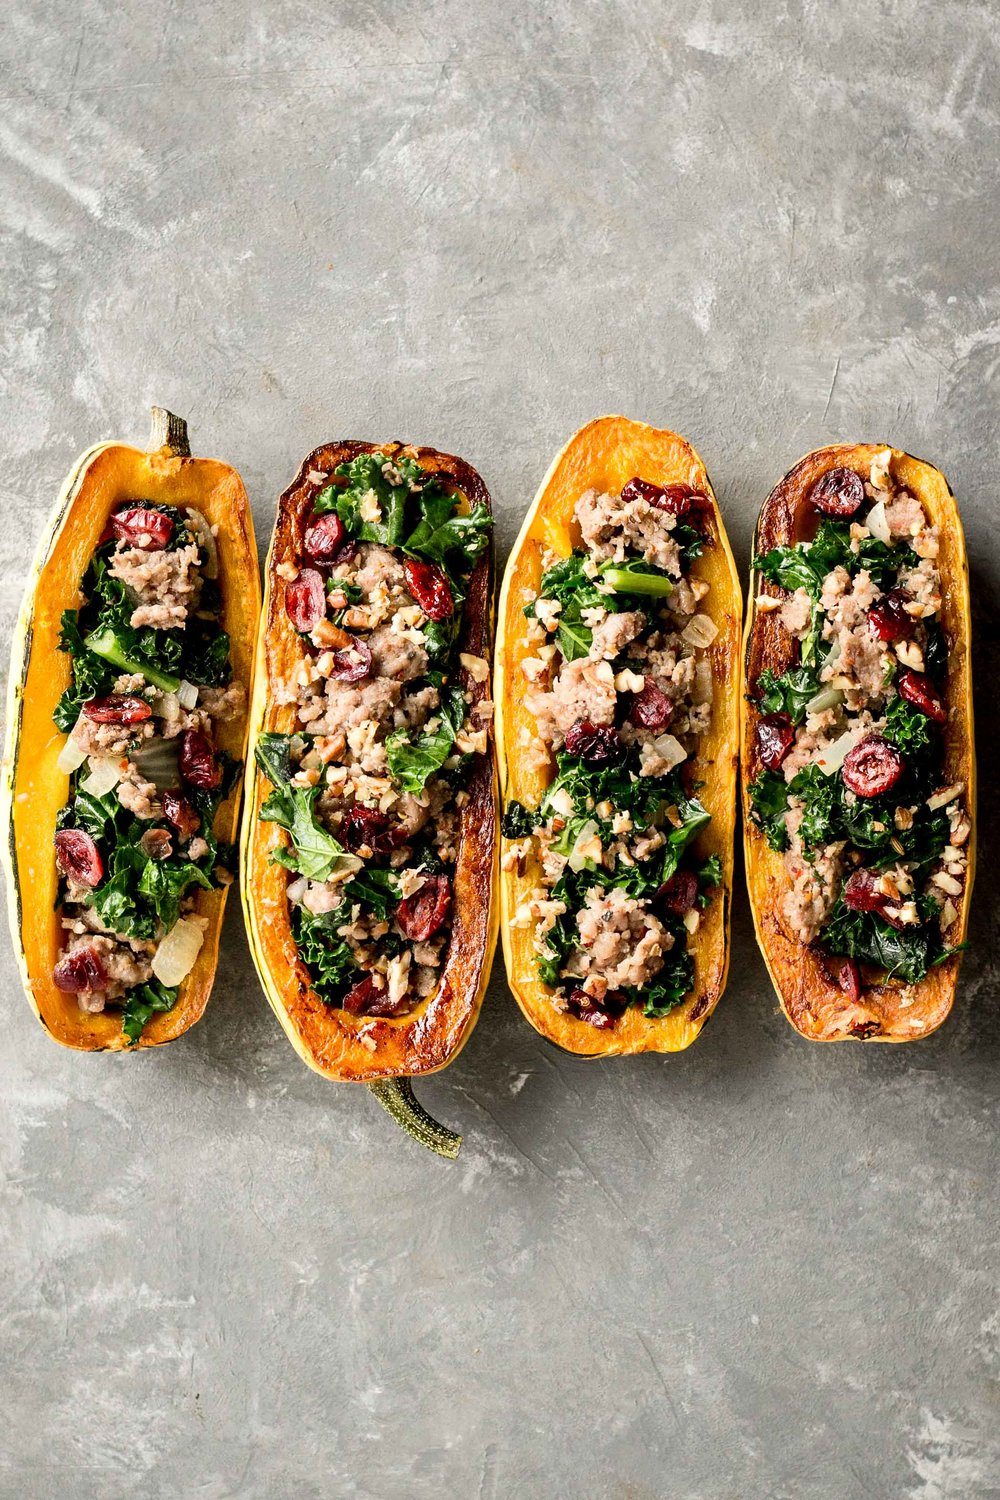 Autumn Spiced Pork Sausage & Kale Stuffed Squash   (use any winter squash here)